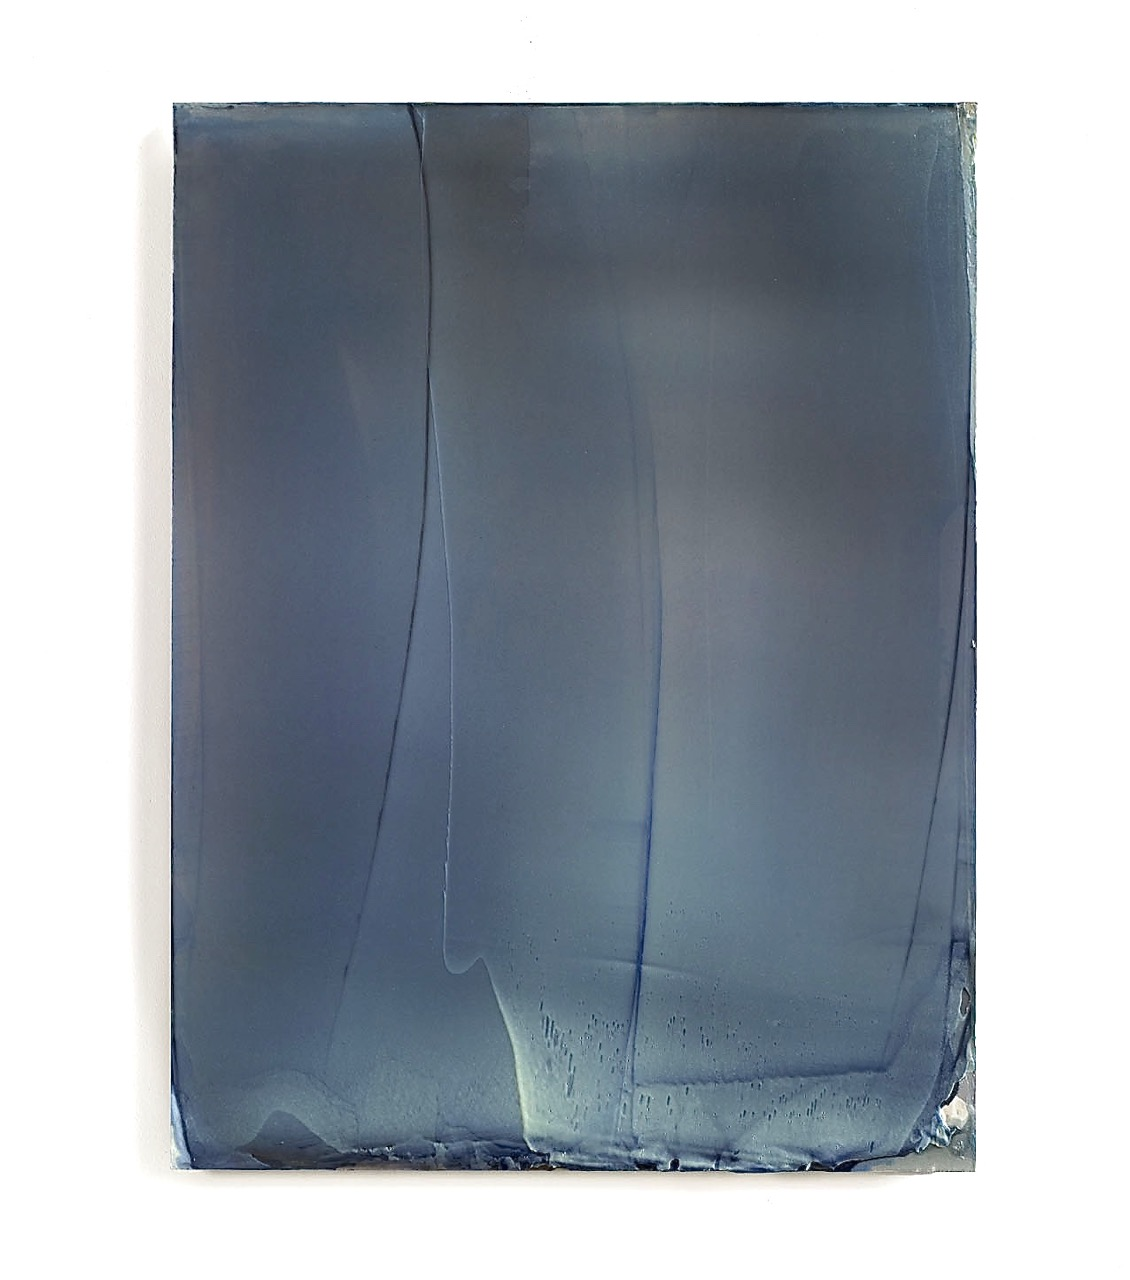 Untitled (Lead Yellow over Blue), 2010, 60x45cm, Kremer Pigments and Acrylic/Polyurethane on Aluminum Panel